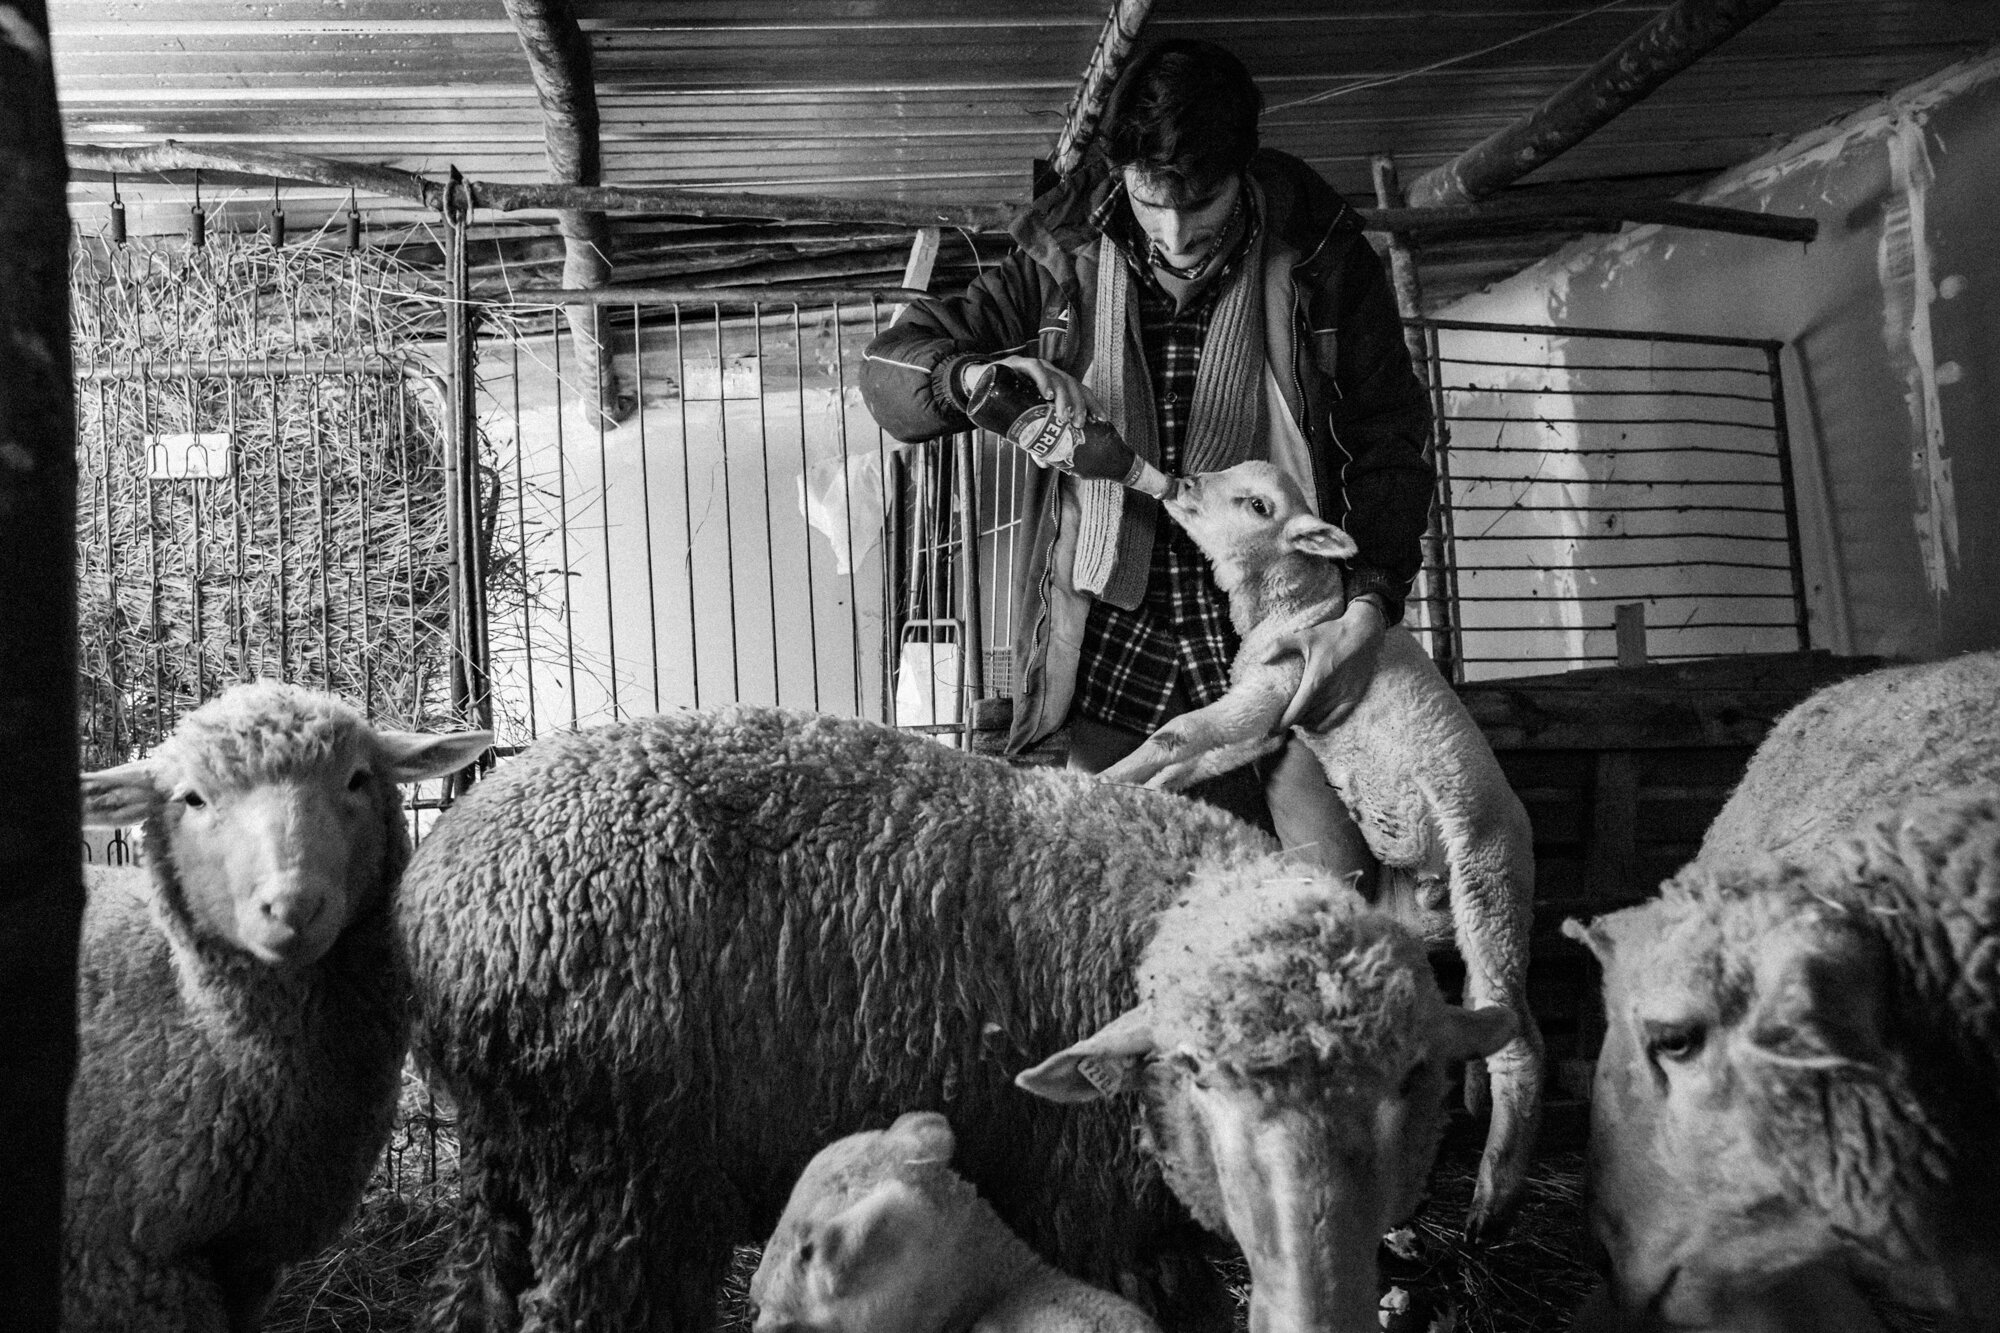 Castel del Giudice (IS), January 2016. Carmine Valentino Mosesso, young student at the agriculture faculty, takes care of a lamb in the family stable. He is one of the few young person which still continue to preserve his roots.